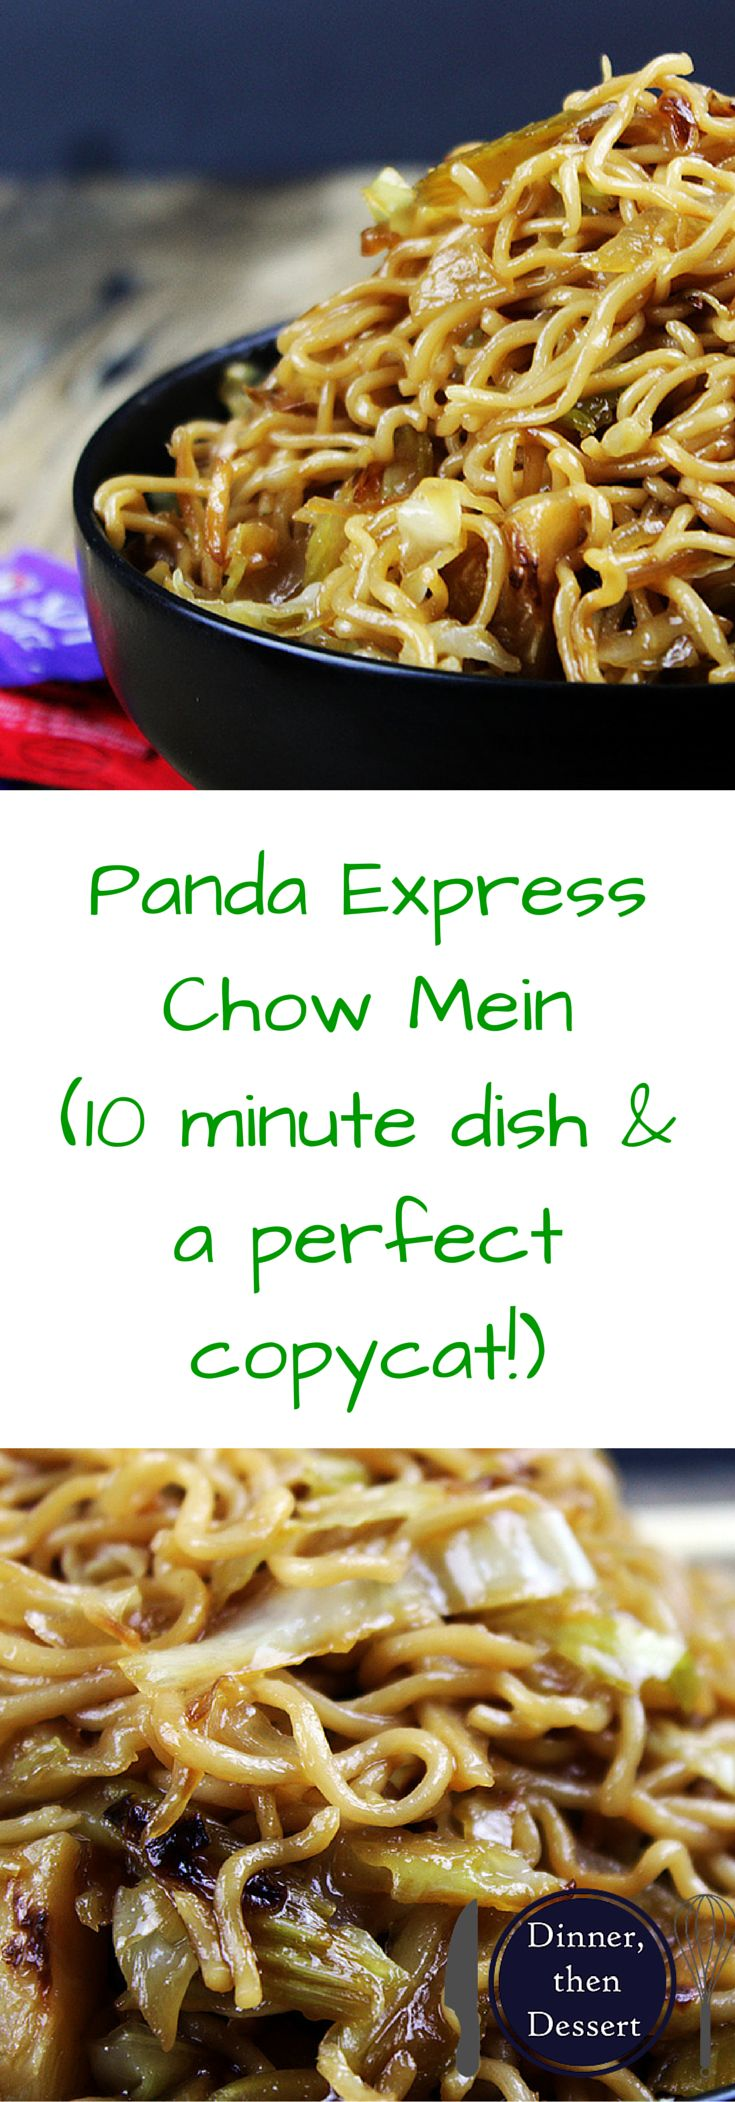 how to make chow mein sauce